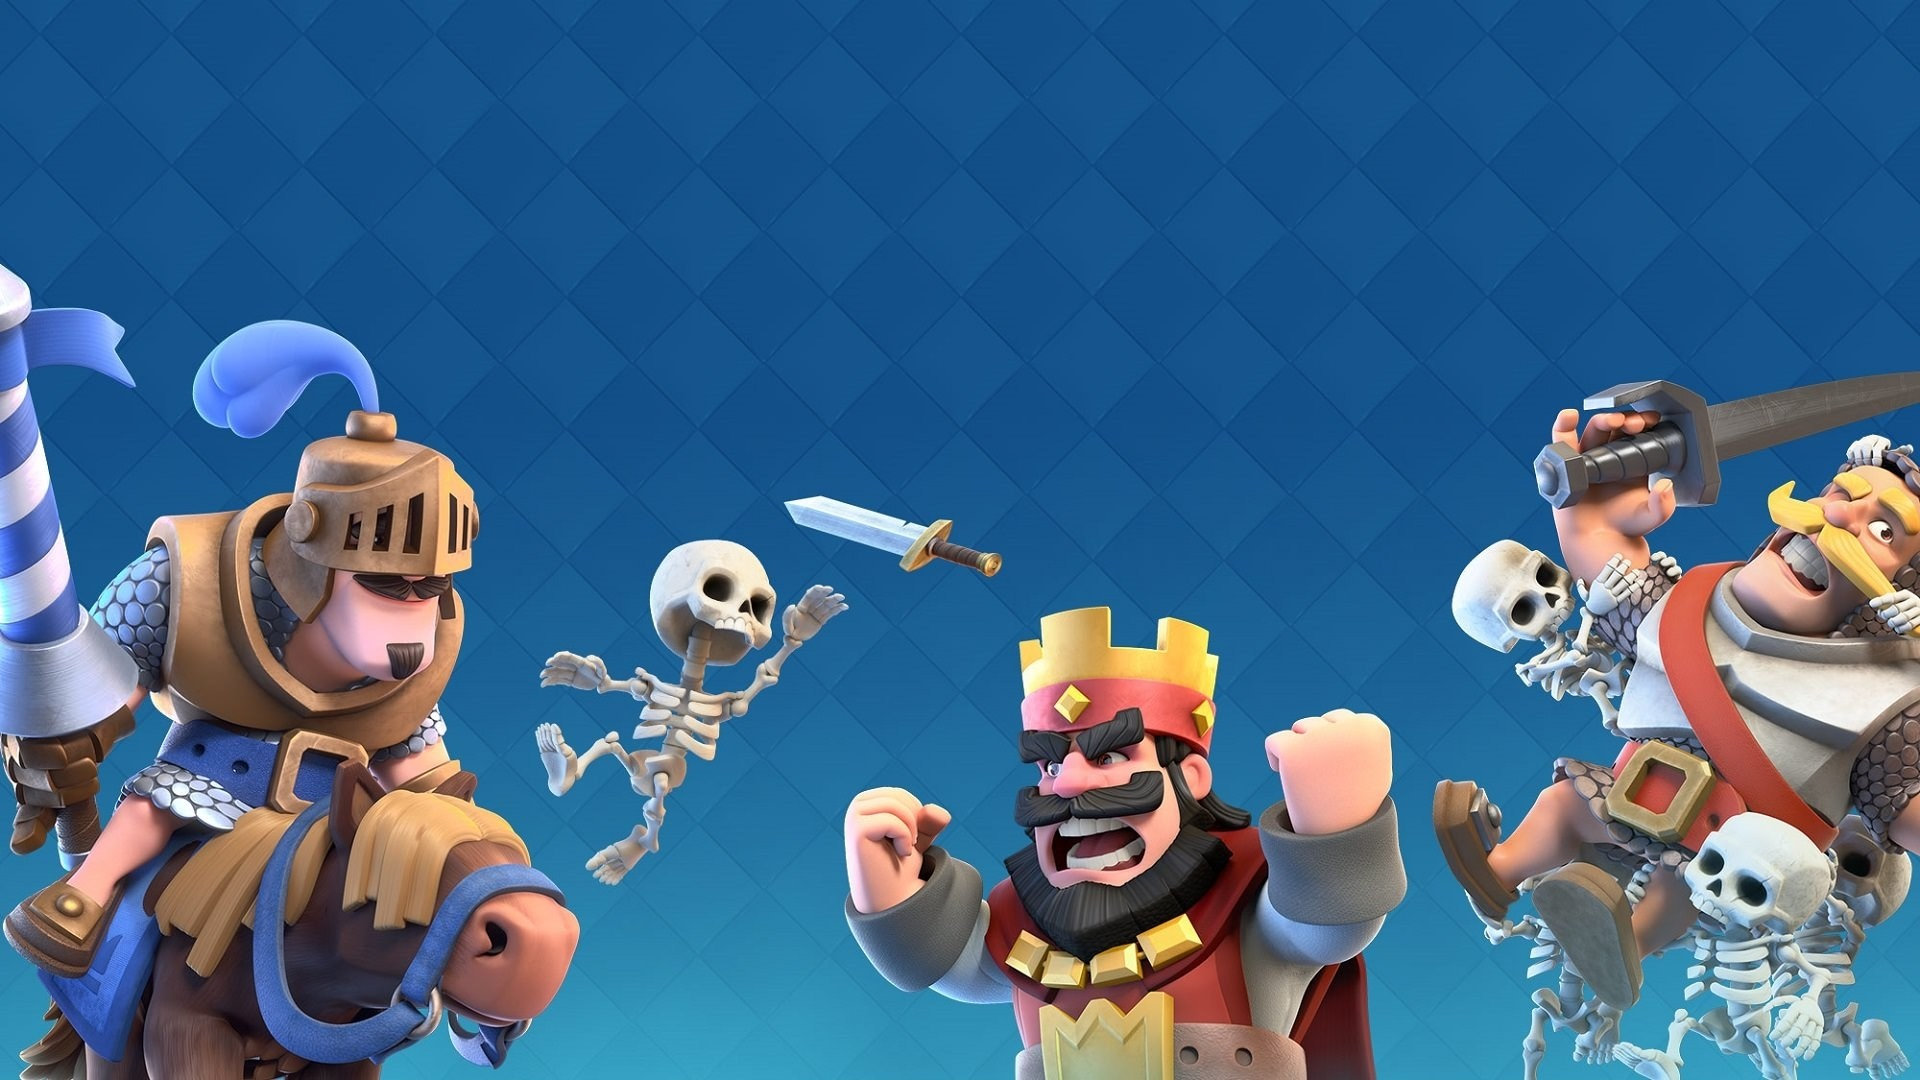 1920x1080 Clash Royale Wallpaper - Tag | Download Hd Wallpaperhd Wallpapers intended  for Best Game Clash Royale